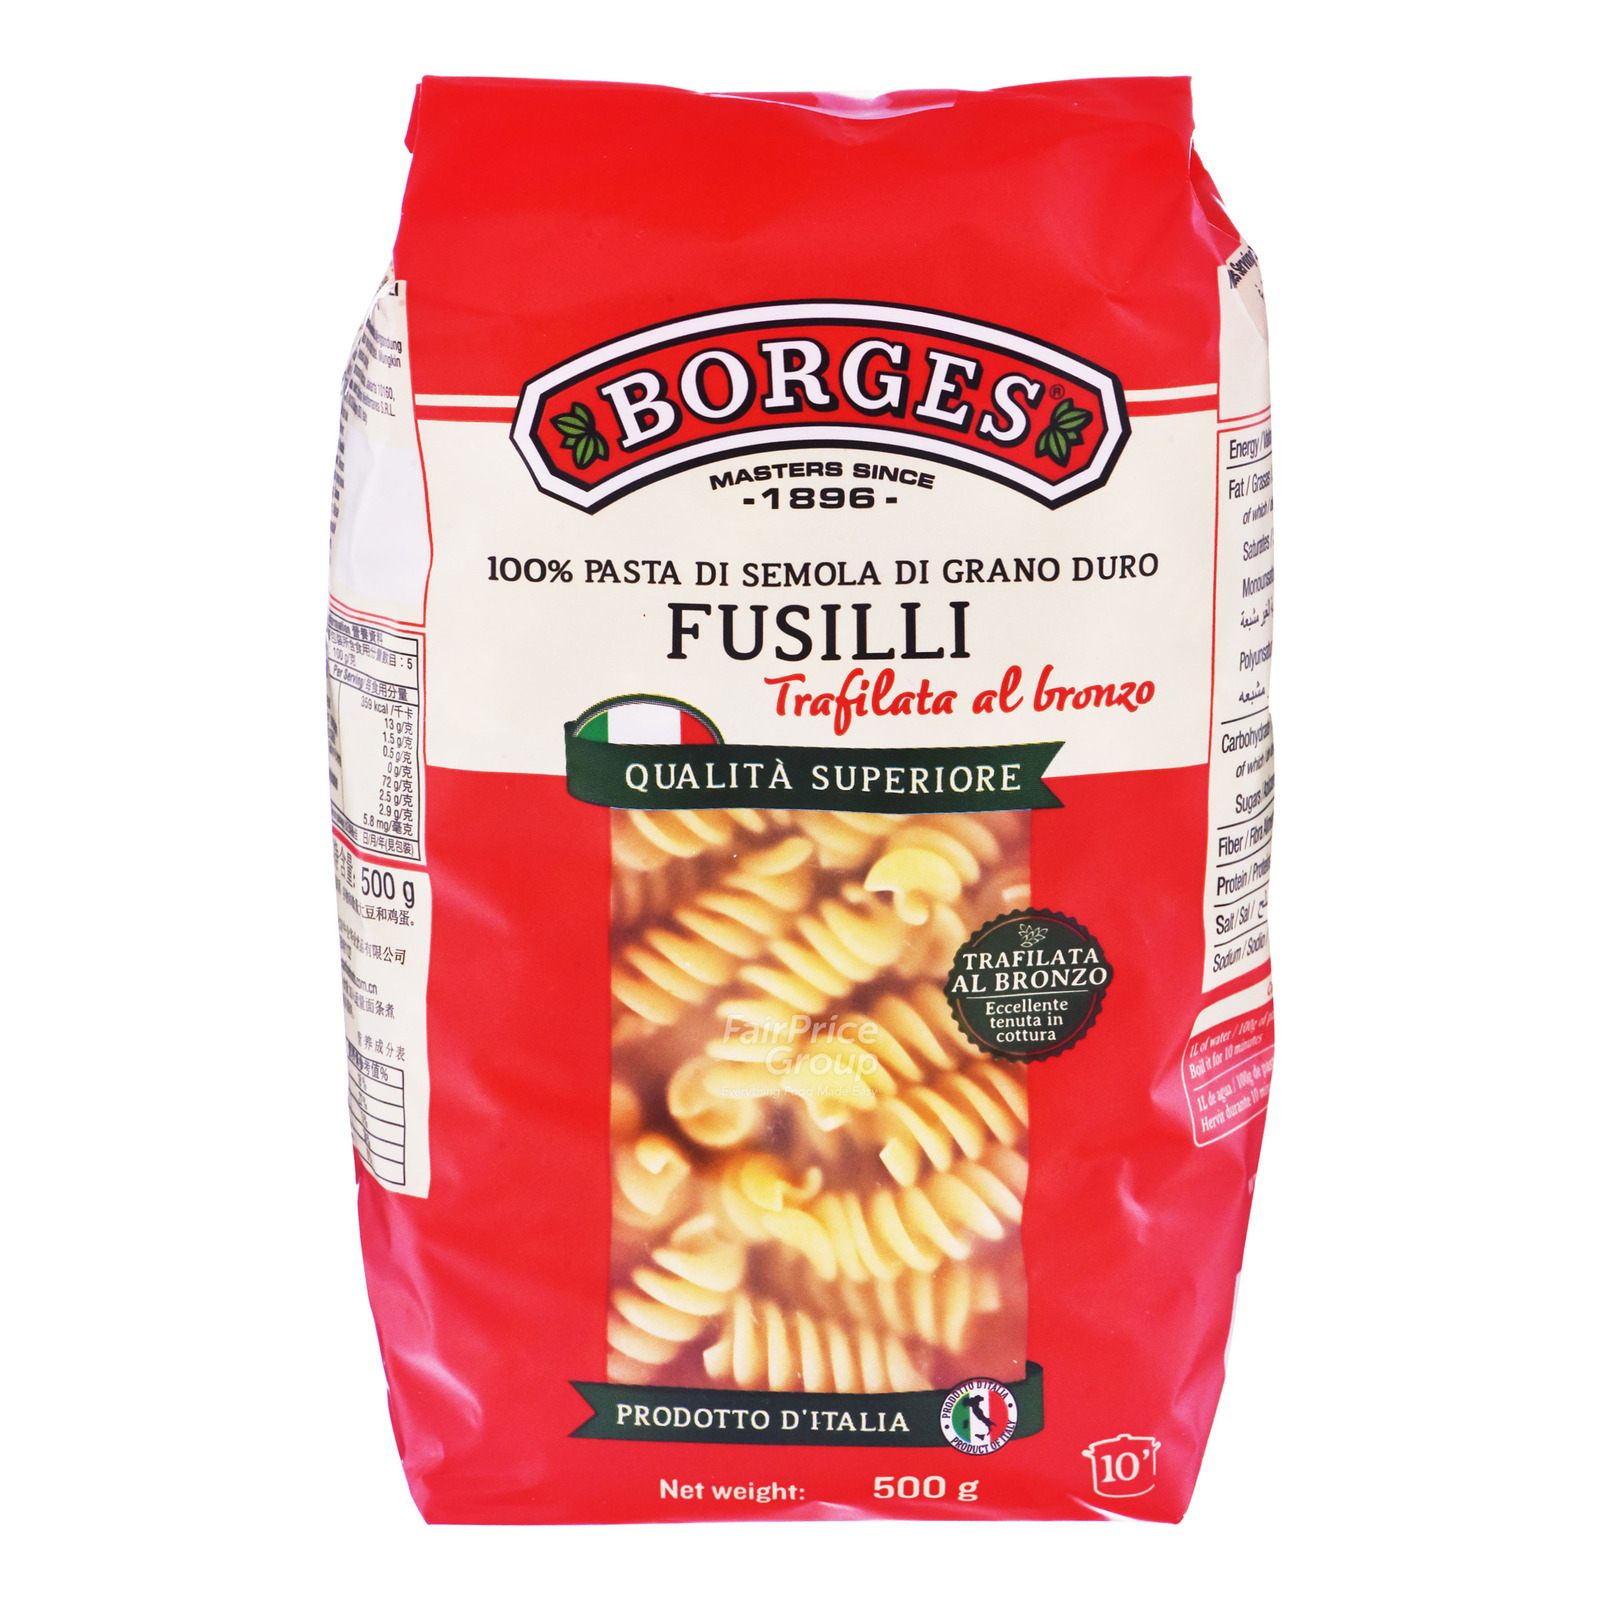 Borges Fusilli Durum Wheat Pasta